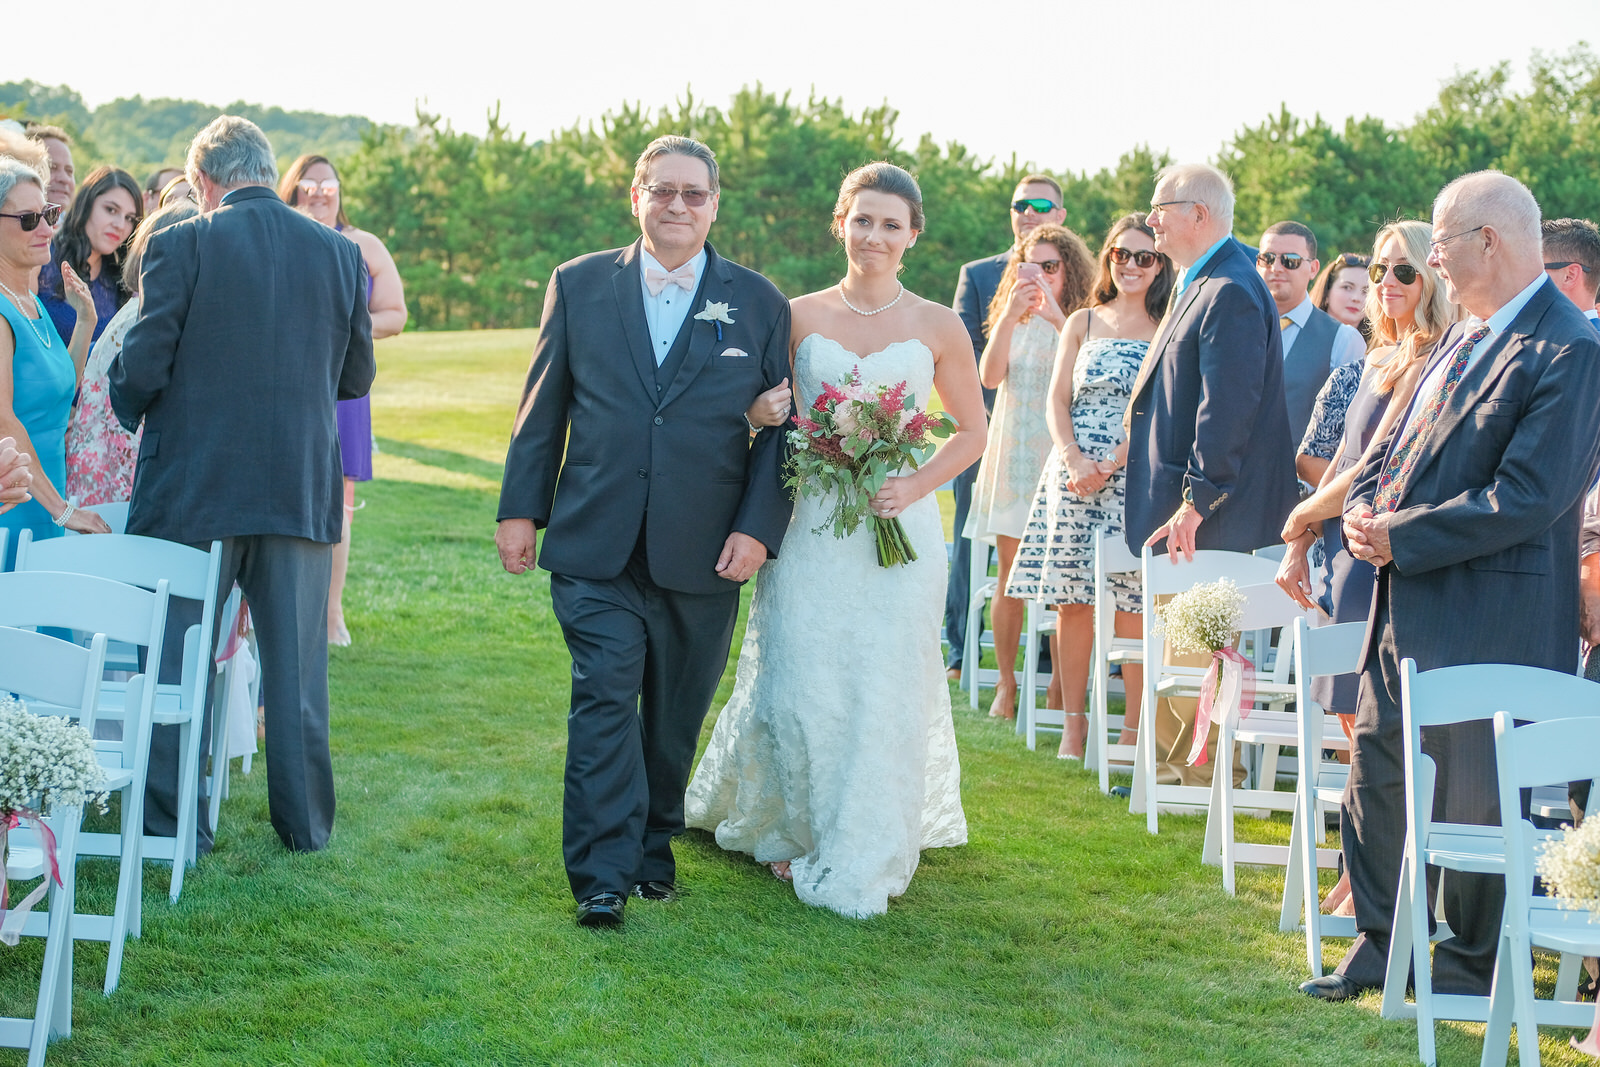 waverly-oaks-golf-club-wedding-photography-50.jpg